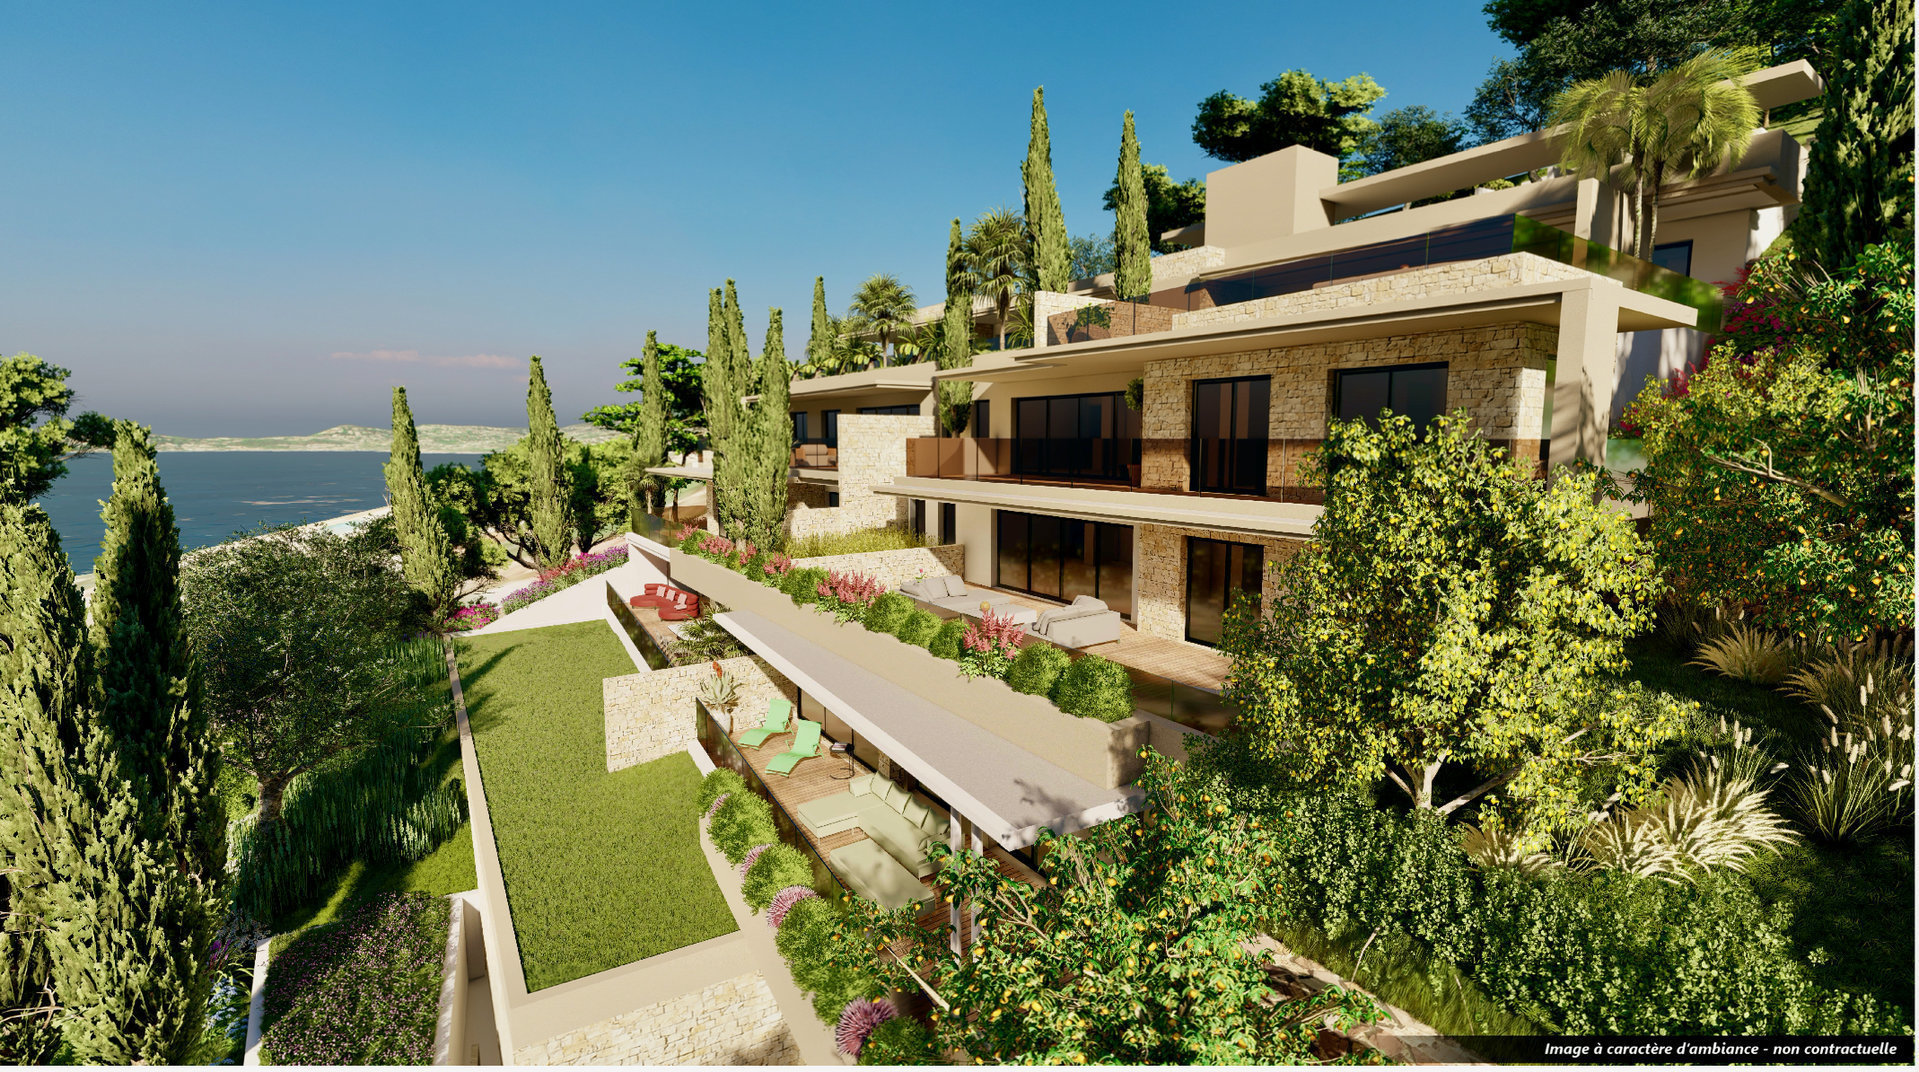 Les Issambres - 91,7 m2 living & 73,9 m2 terrace - New construction high standing apartment with great sea-view